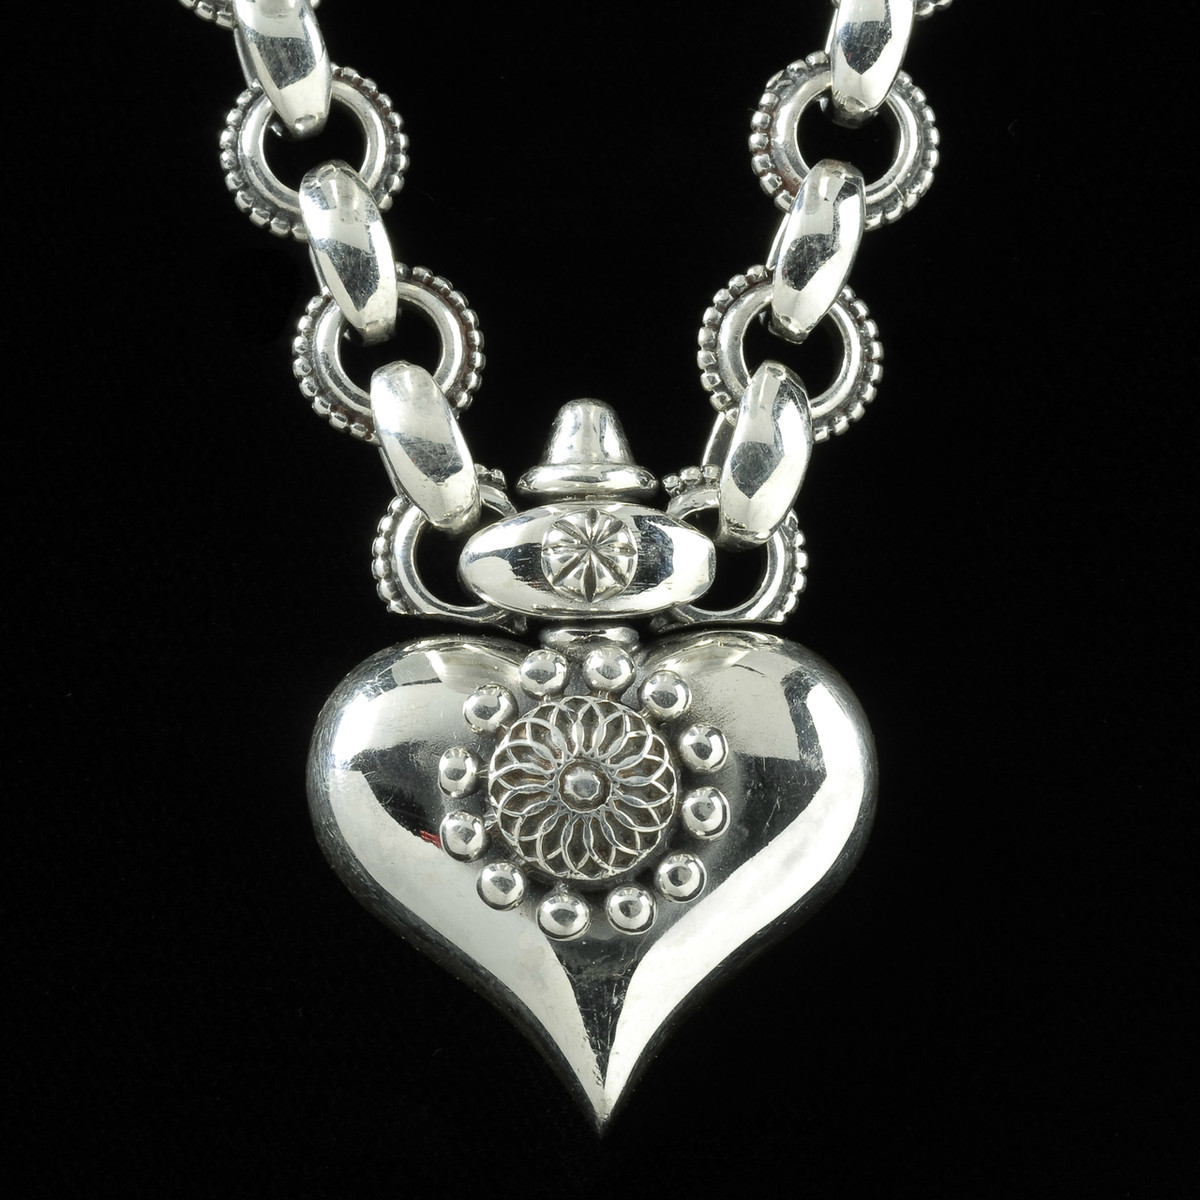 6fbf4417af Sterling Silver handmade Heart Necklace with link chain by Bowman  Originals, Sarasota, 941-